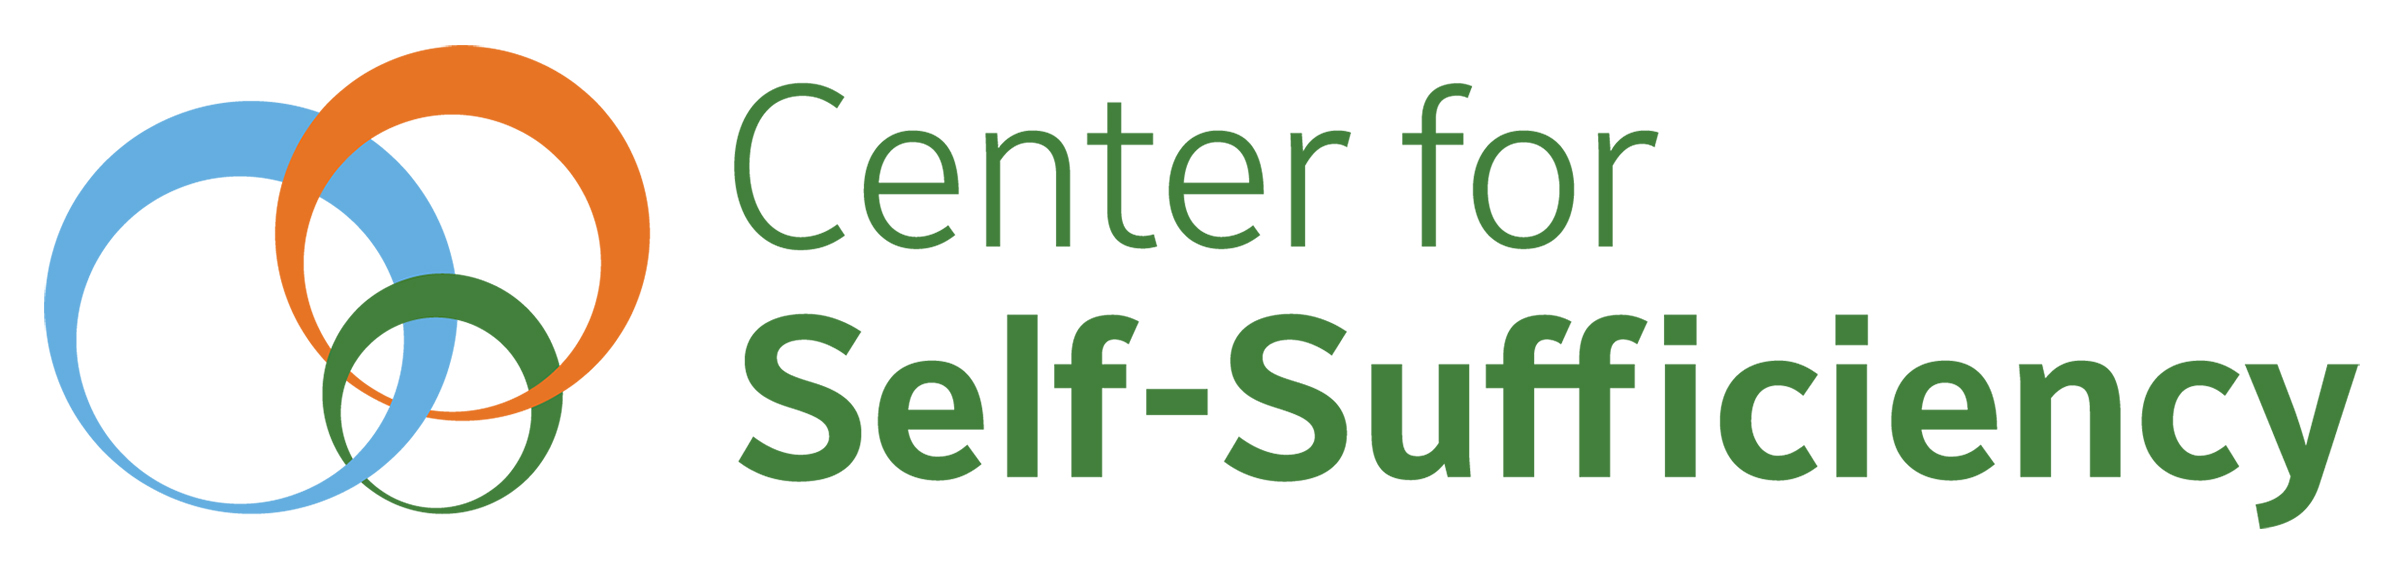 Center for Self Sufficiancy